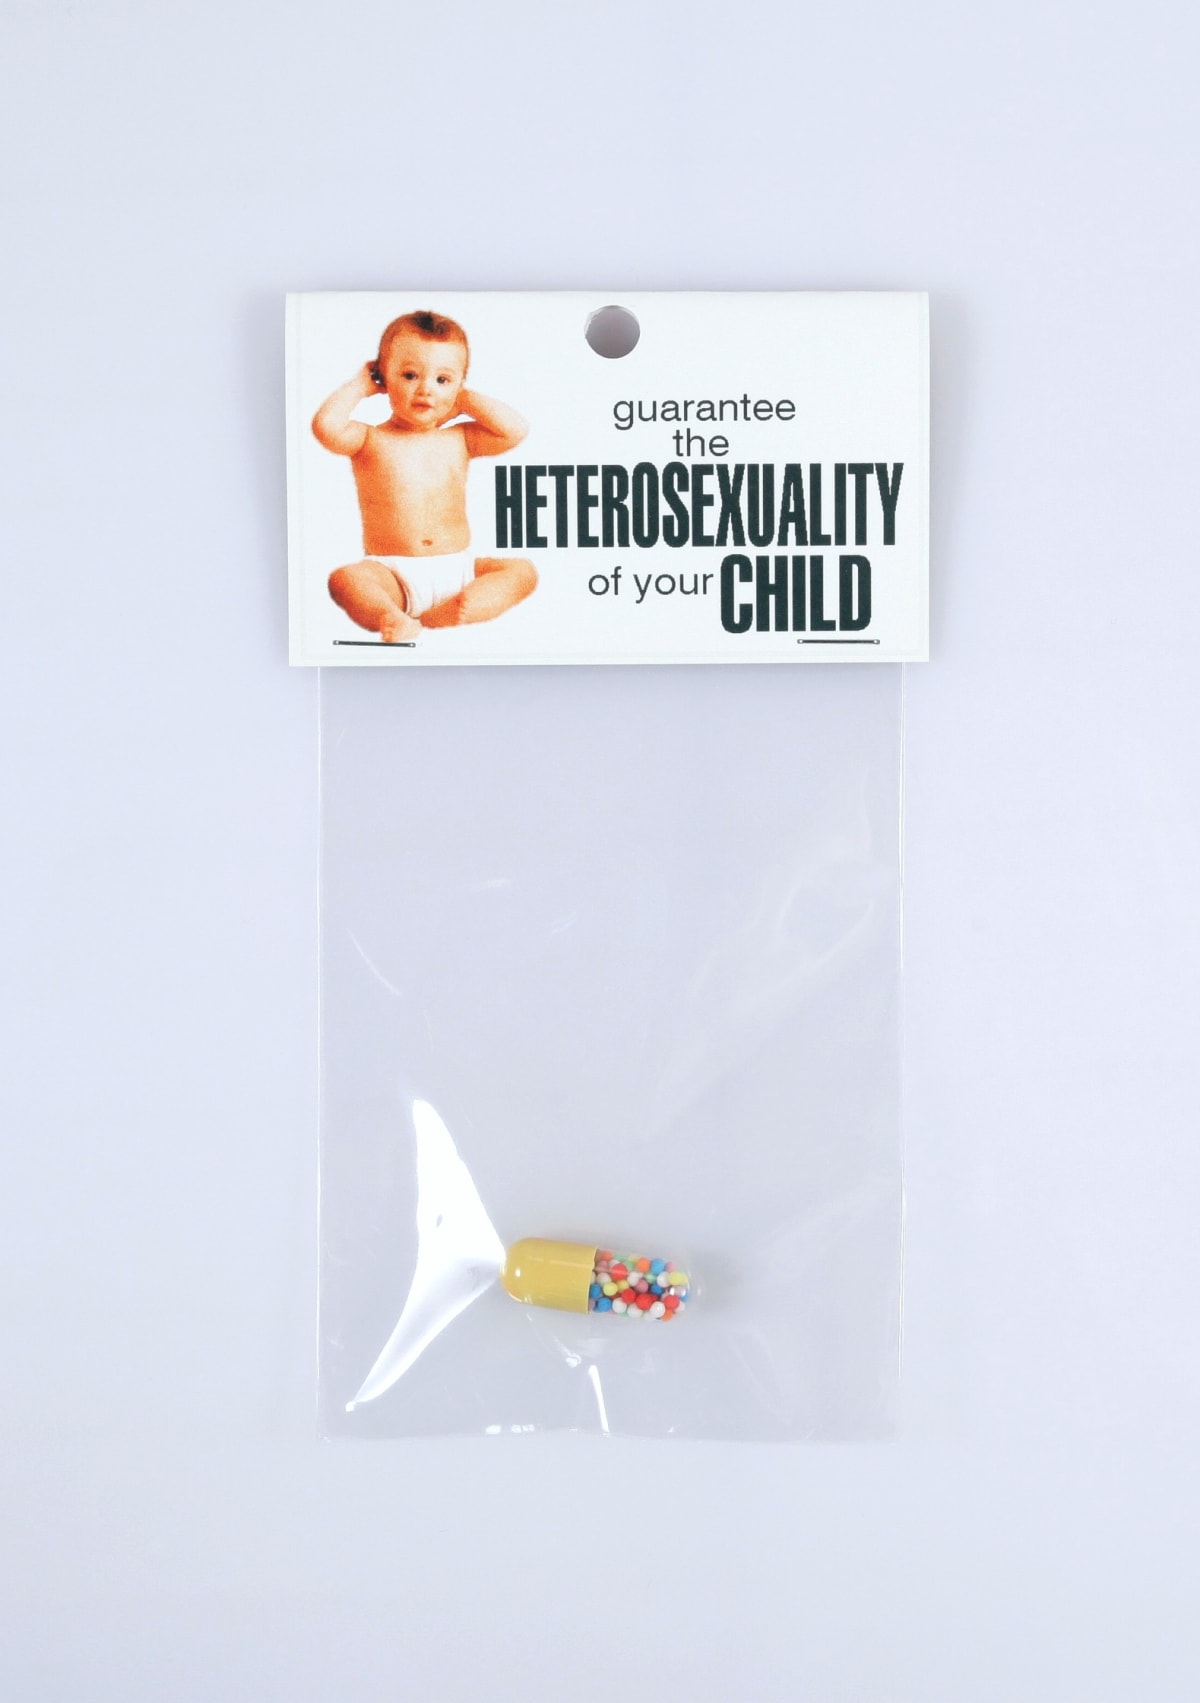 Guarantee the heterosexuality of your child